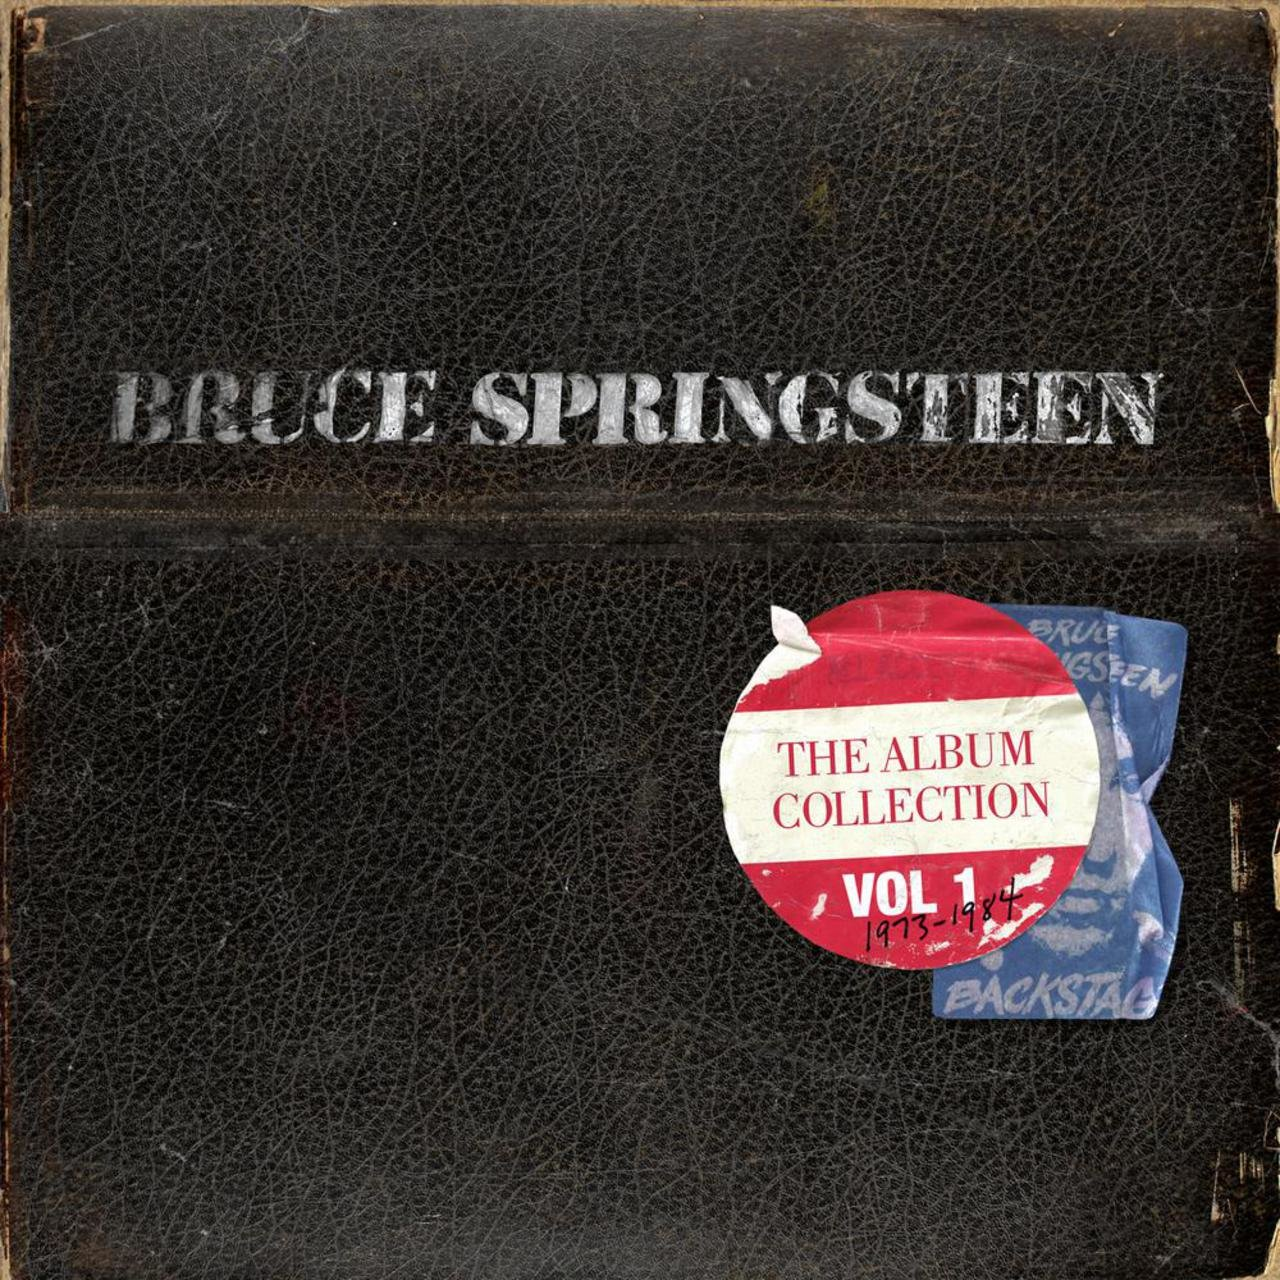 The Album Collection, Vol. 1 (1973 - 1984)